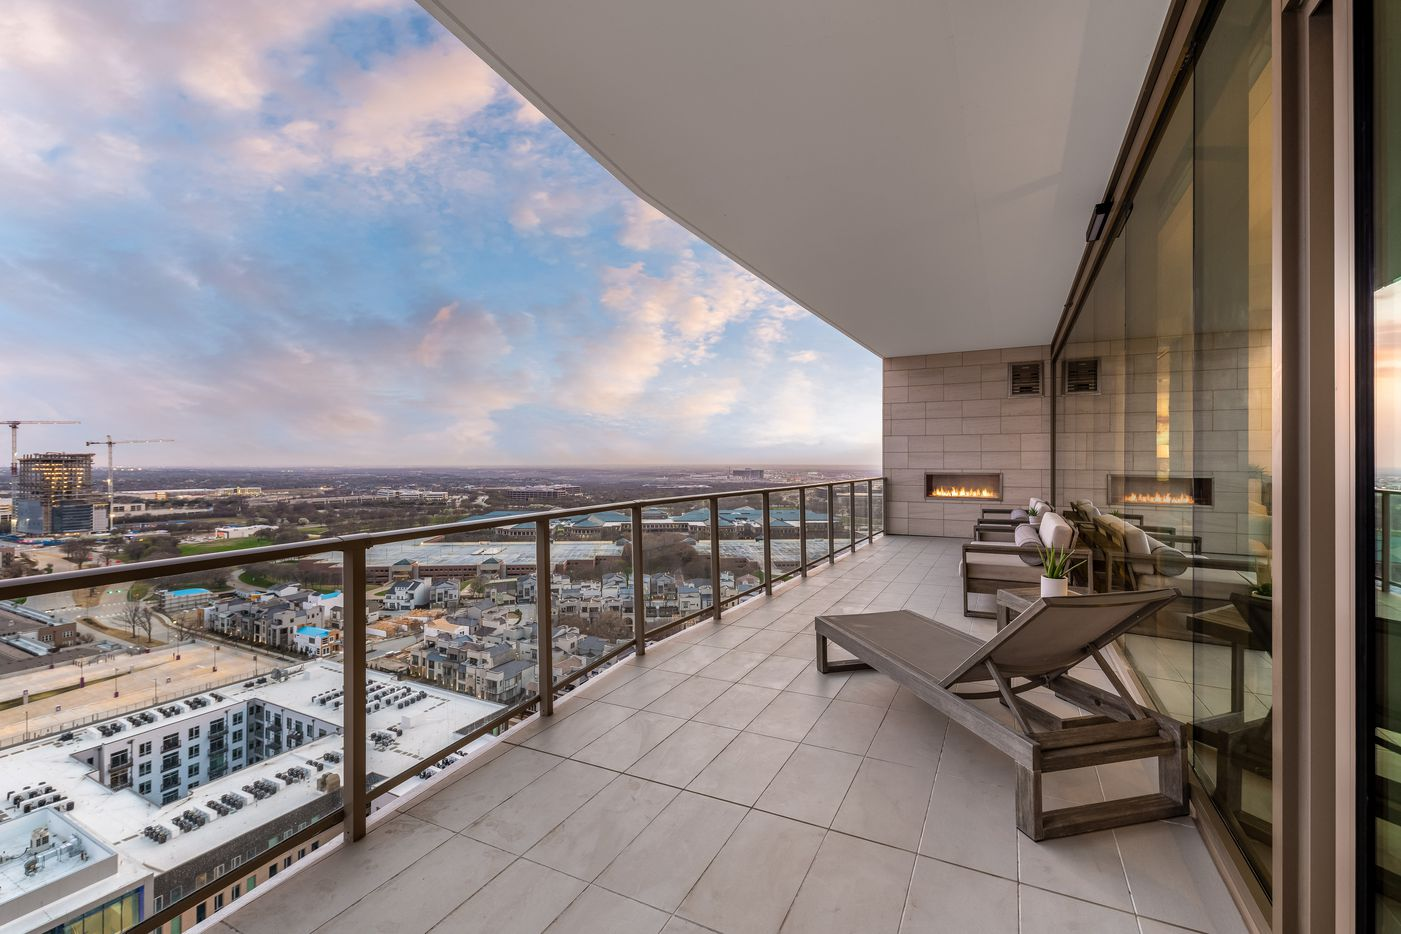 Take a look at this Plano condo at 7901 Windrose Ave., Unit 2204.